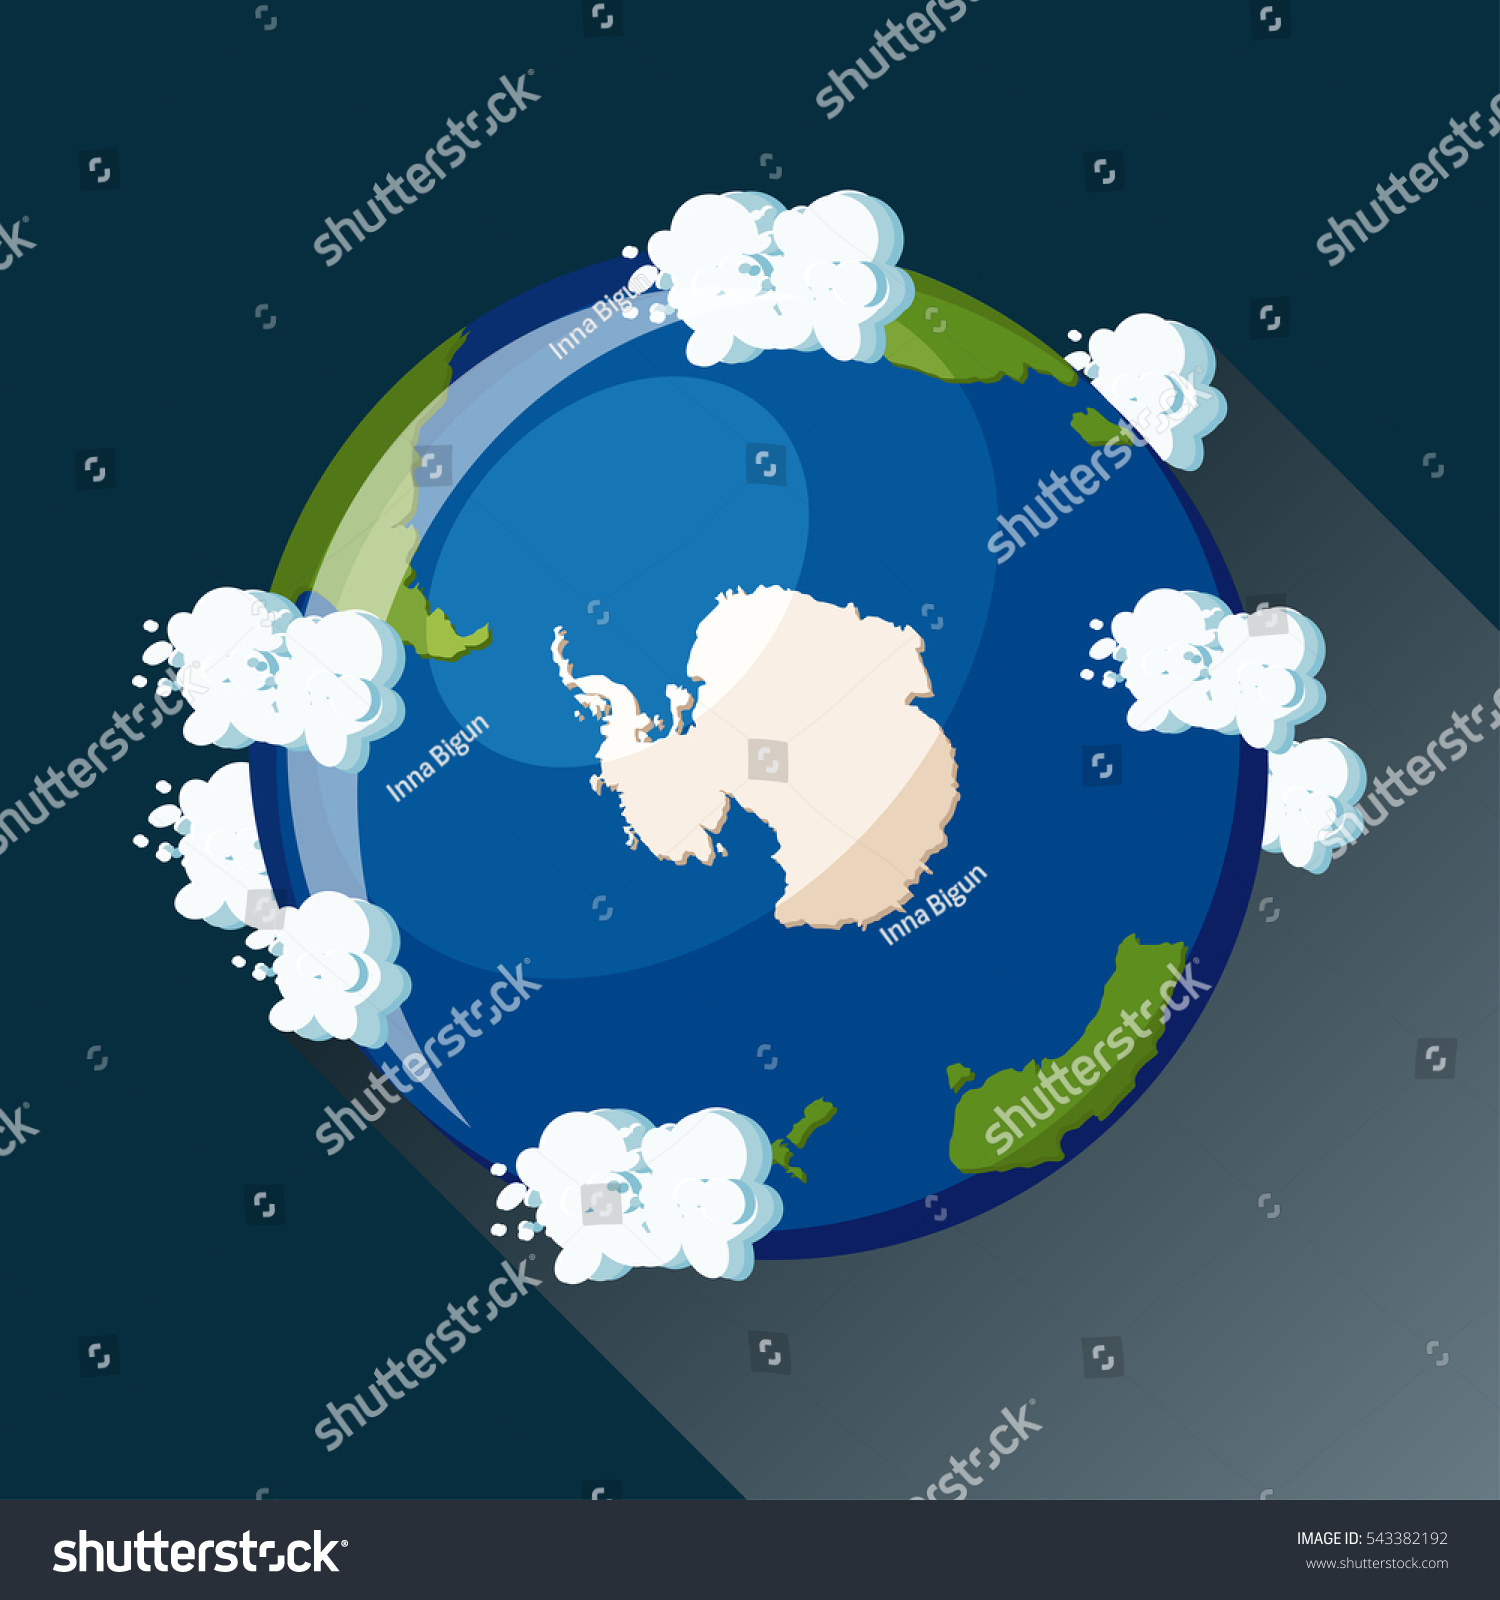 Antarctica map on planet earth view vectores en stock 543382192 antarctica map on planet earth view from space antarctica globe icon planet earth gumiabroncs Choice Image